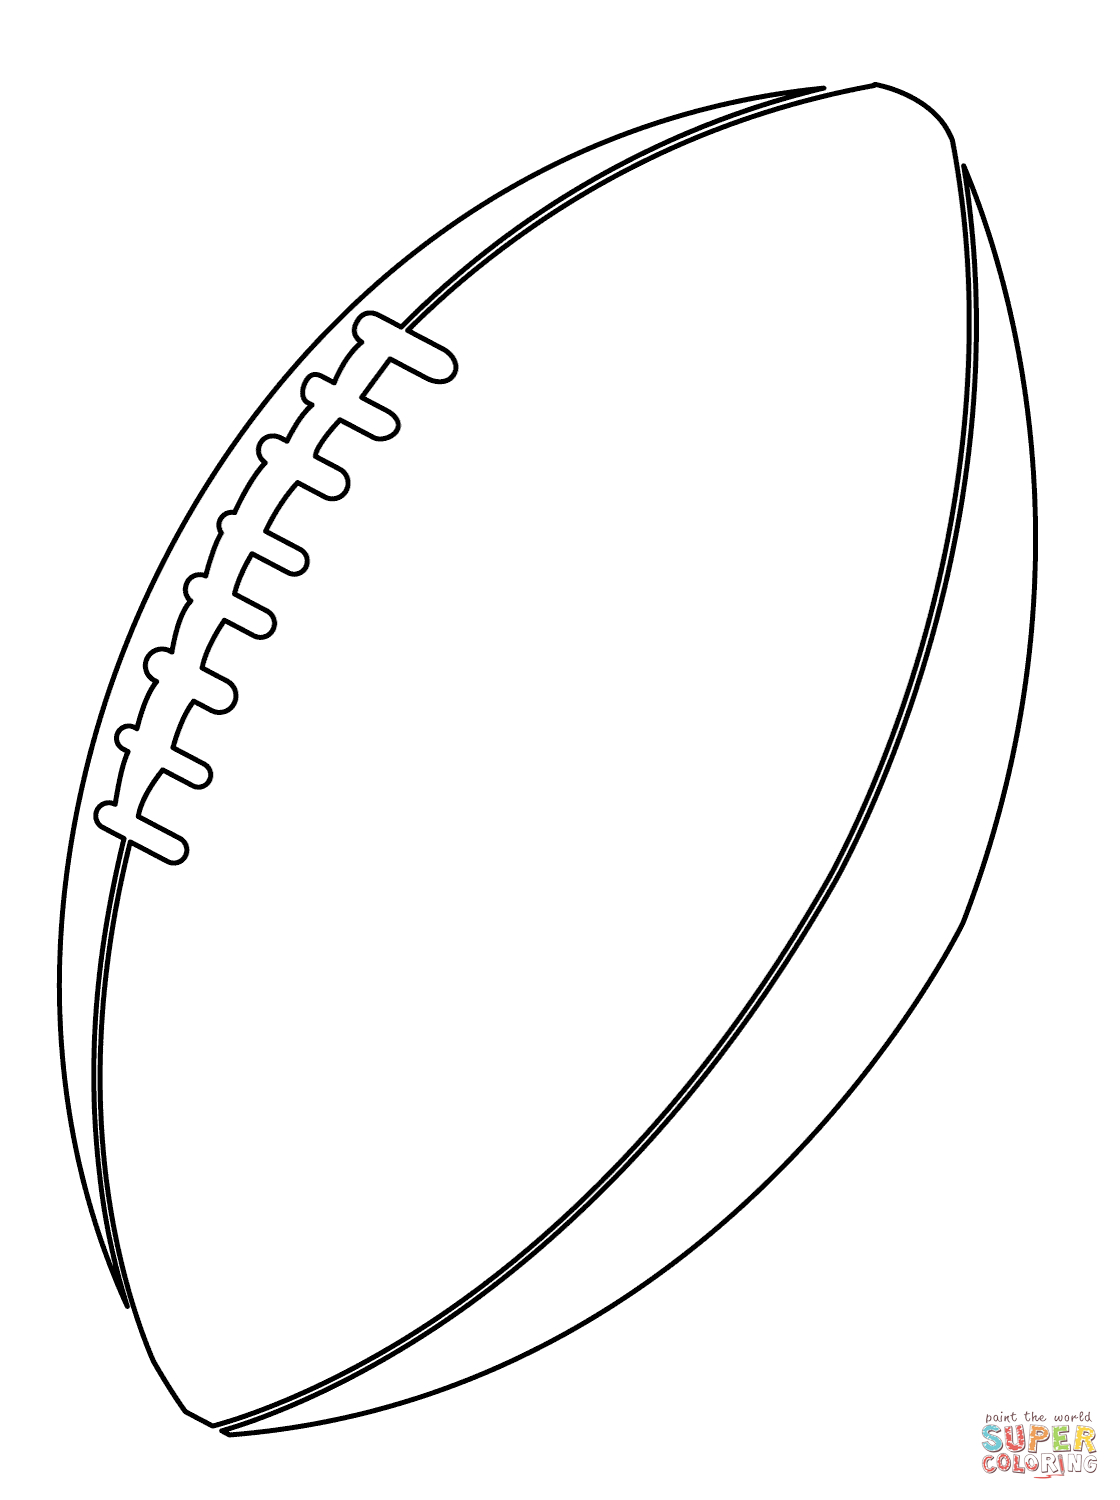 Football Color Pages American Football Ball Coloring Page Free Printable Coloring Pages